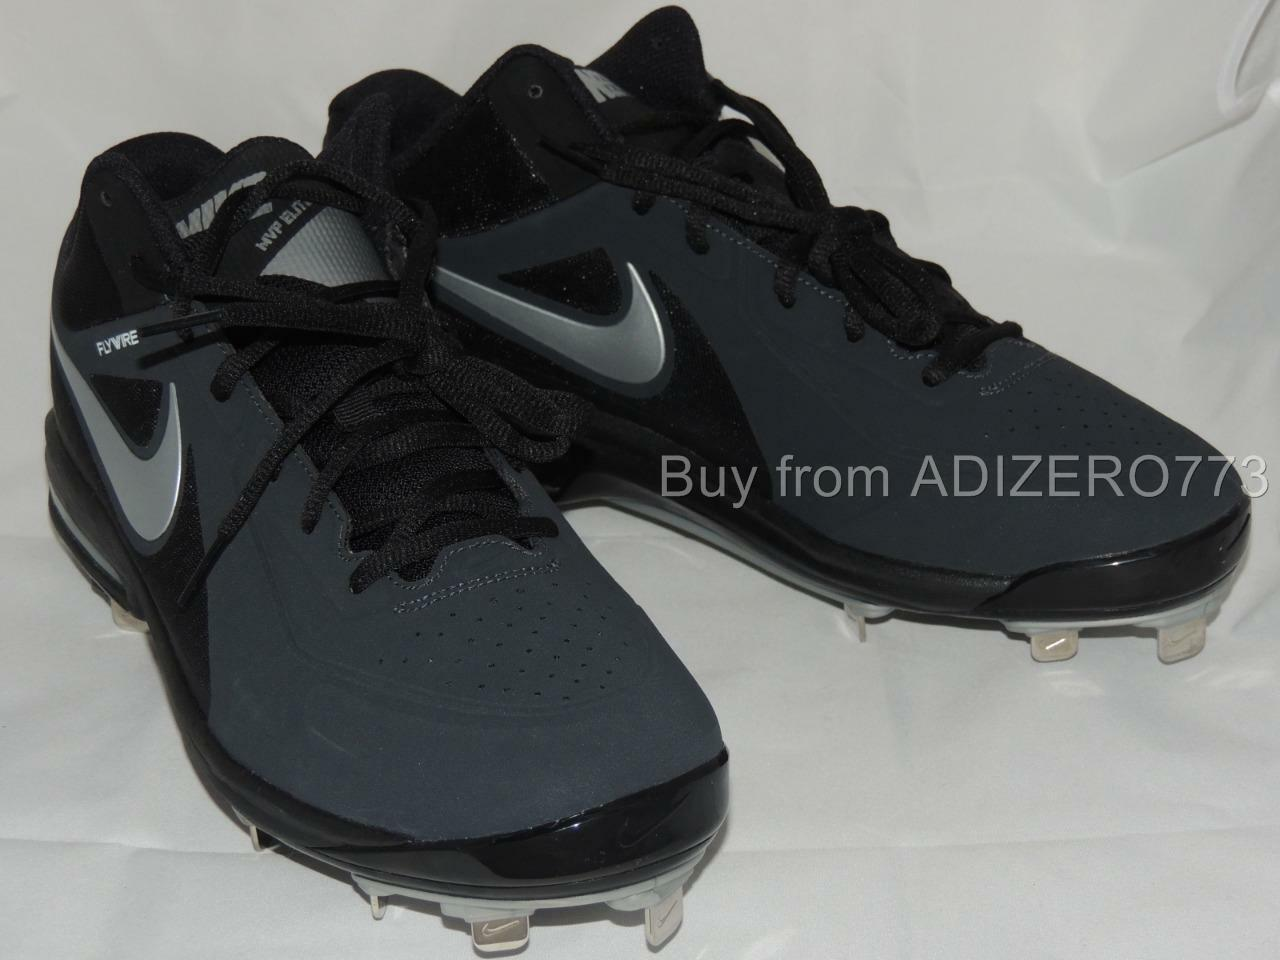 NIKE 524957 MVP Elite metal baseball cleats Mid Cut  524957 NIKE 001 Black NEW!! Mens 1b5ead